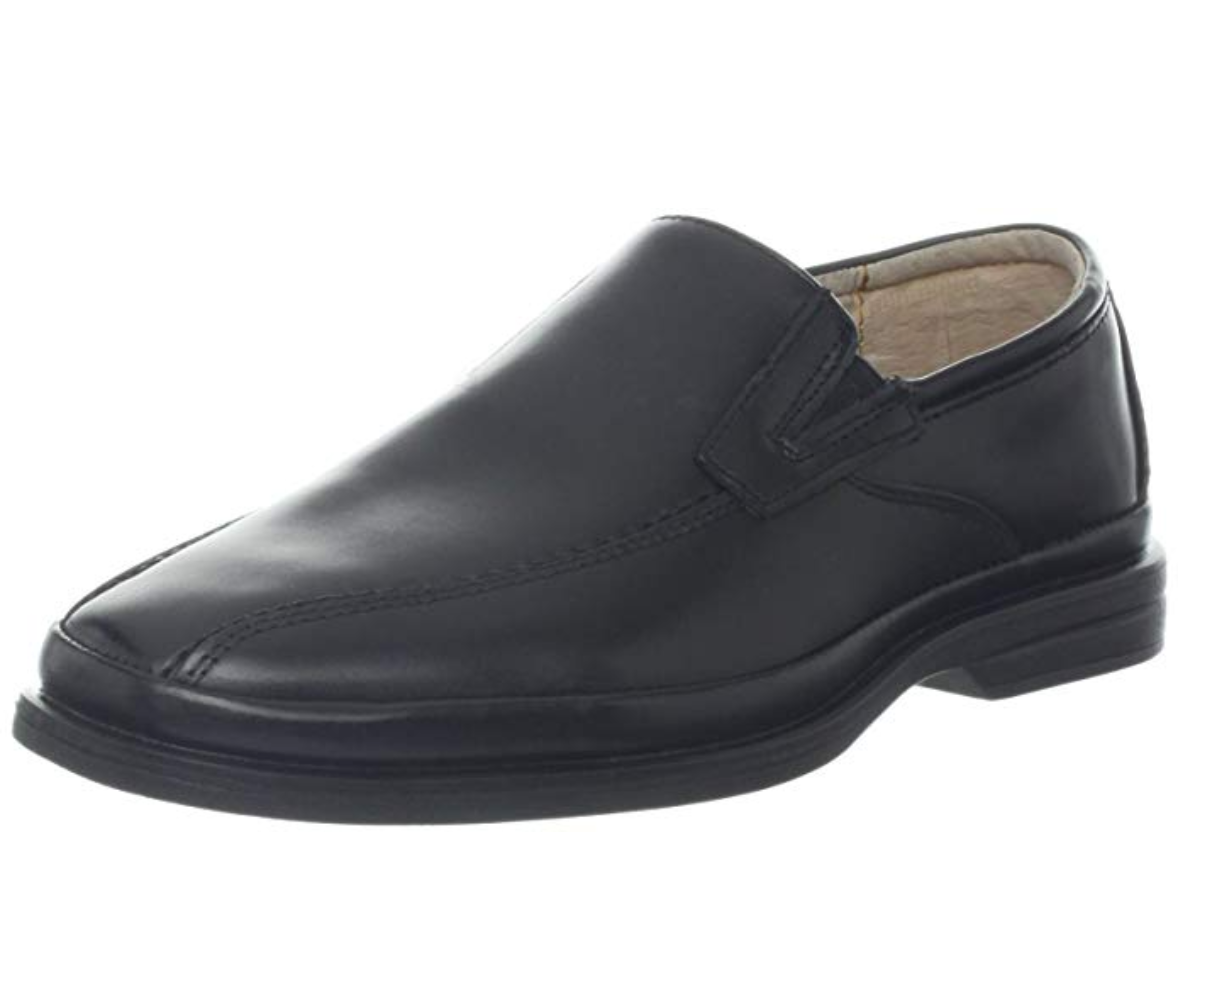 Wrapid Jr. Slip-On Shoe by Florsheim